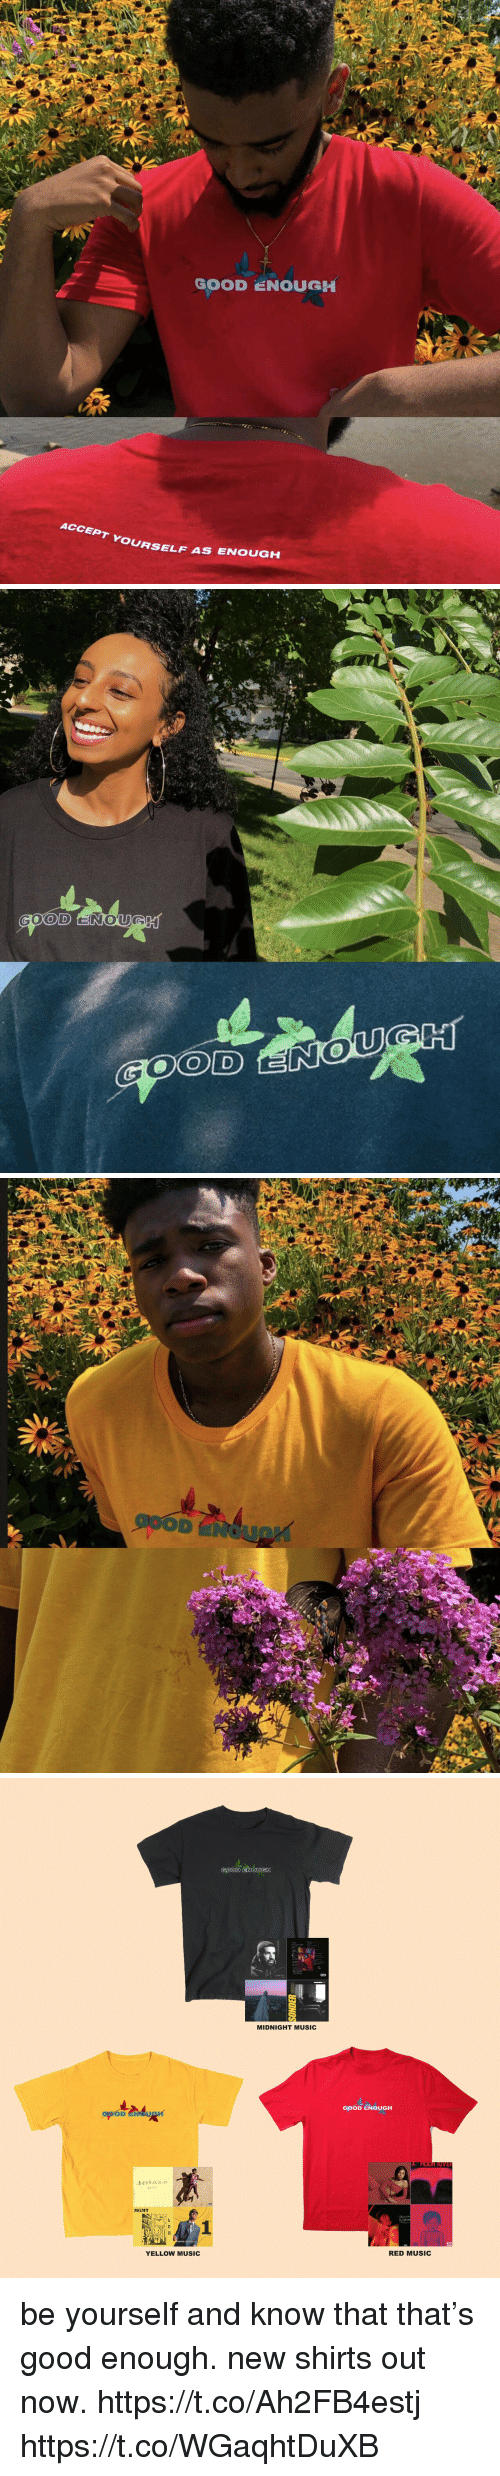 Funny, Music, and Good: GOOD ENOUGH  OURSELF AS ENOUGH   GOOD ENOueH  MIDNIGHT MUSIC  GOOD ENOUGH  behana  MGMT  YELLOW MUSIC  RED MUSIC be yourself and know that that's good enough.   new shirts out now.  https://t.co/Ah2FB4estj https://t.co/WGaqhtDuXB